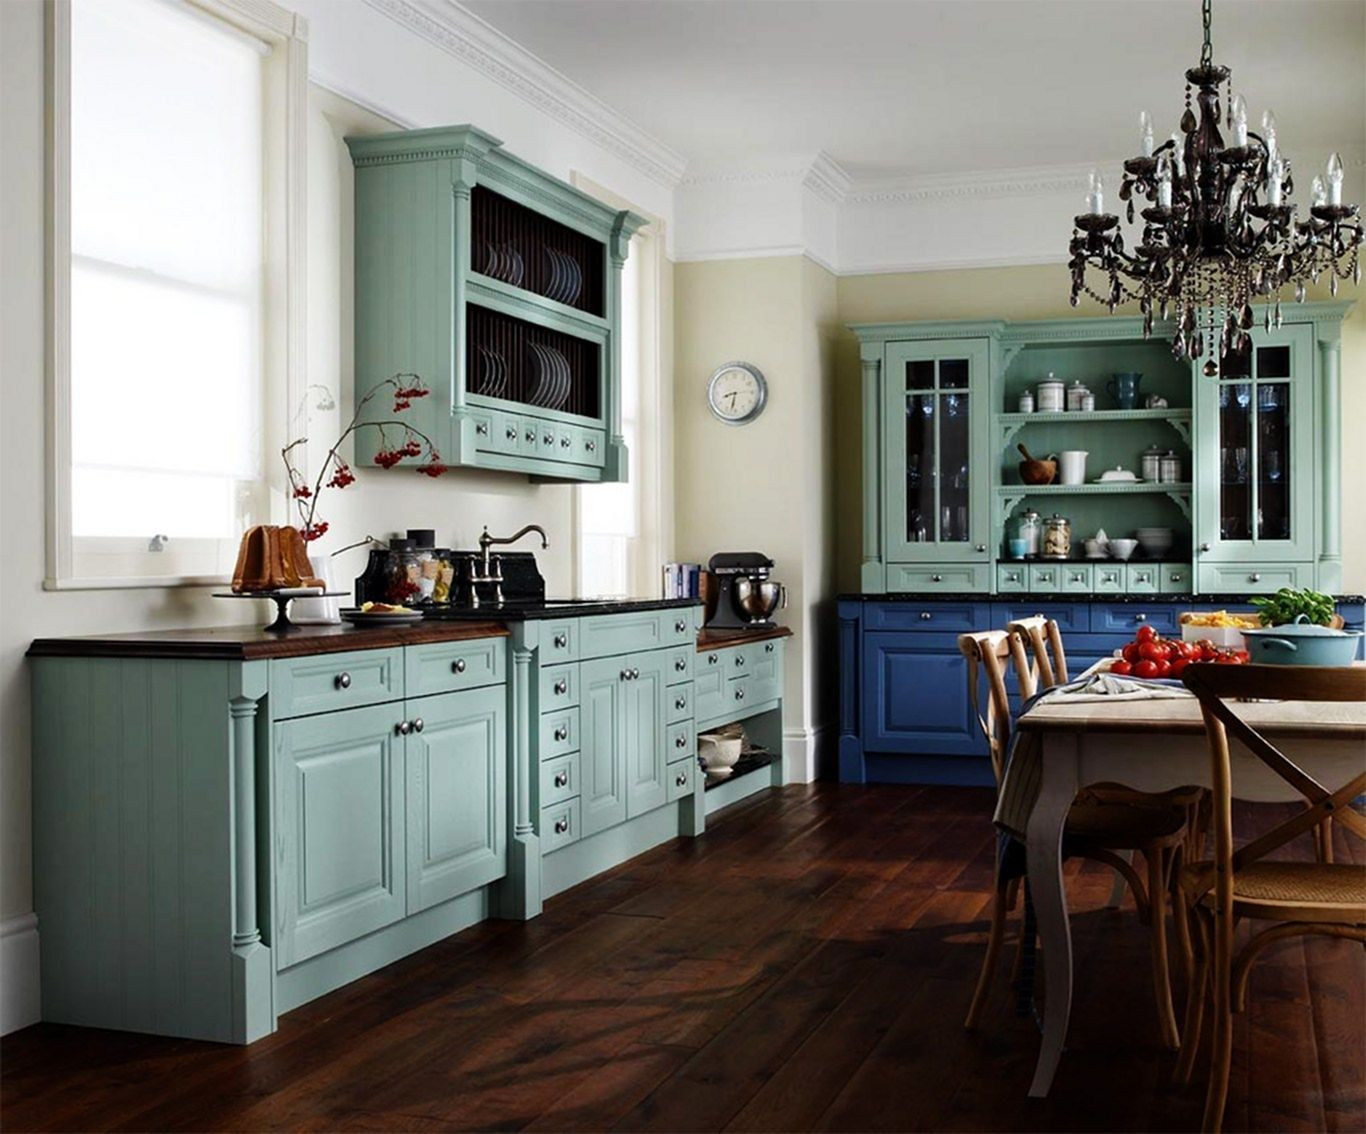 33 Most Popular Kitchen Cabinets Color Paint Ideas Trend 2019 Teracee Diy Kitchen Cabinets Painting Painted Kitchen Cabinets Colors Kitchen Cabinet Colors